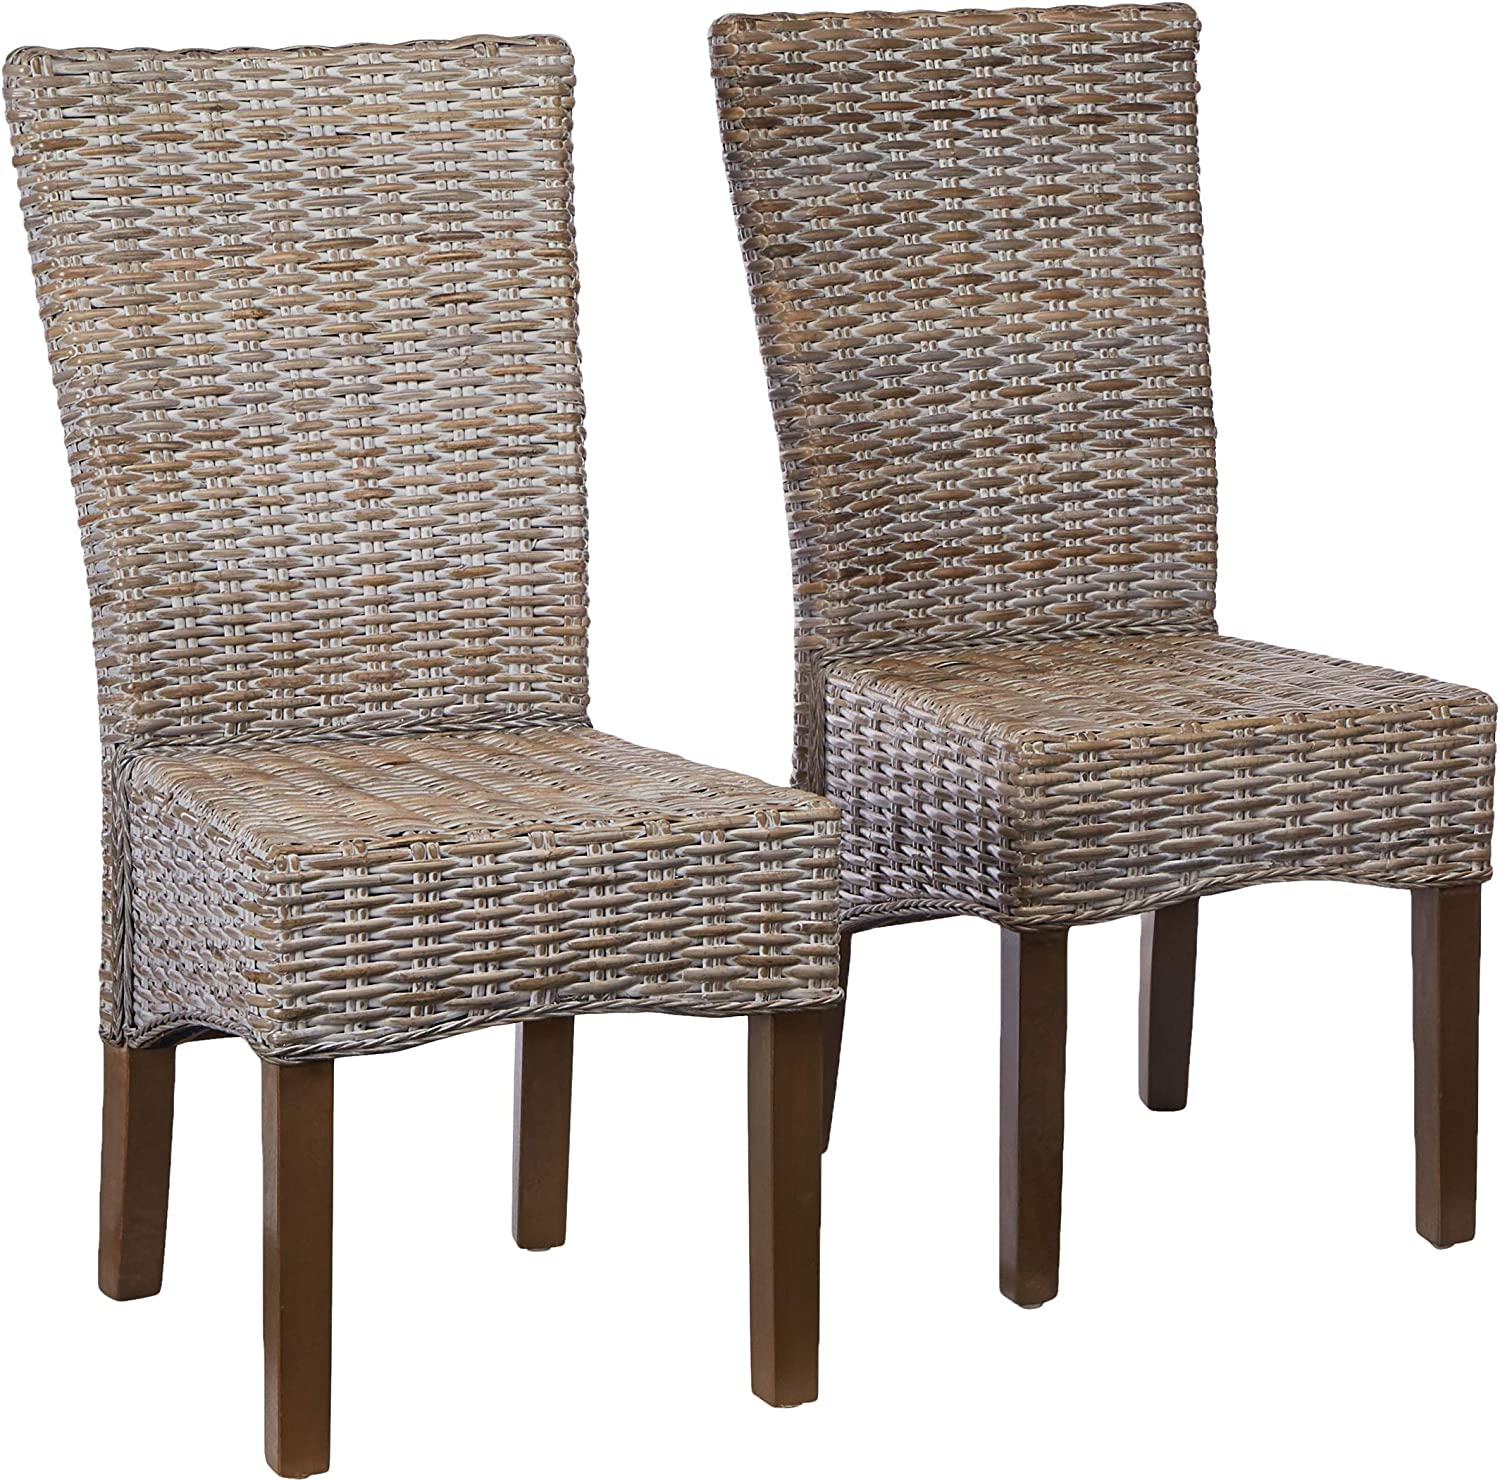 Amazon Com Safavieh Home Collection Ozias Grey Wicker 18 Inch Dining Chair Set Of 2 Furniture Decor